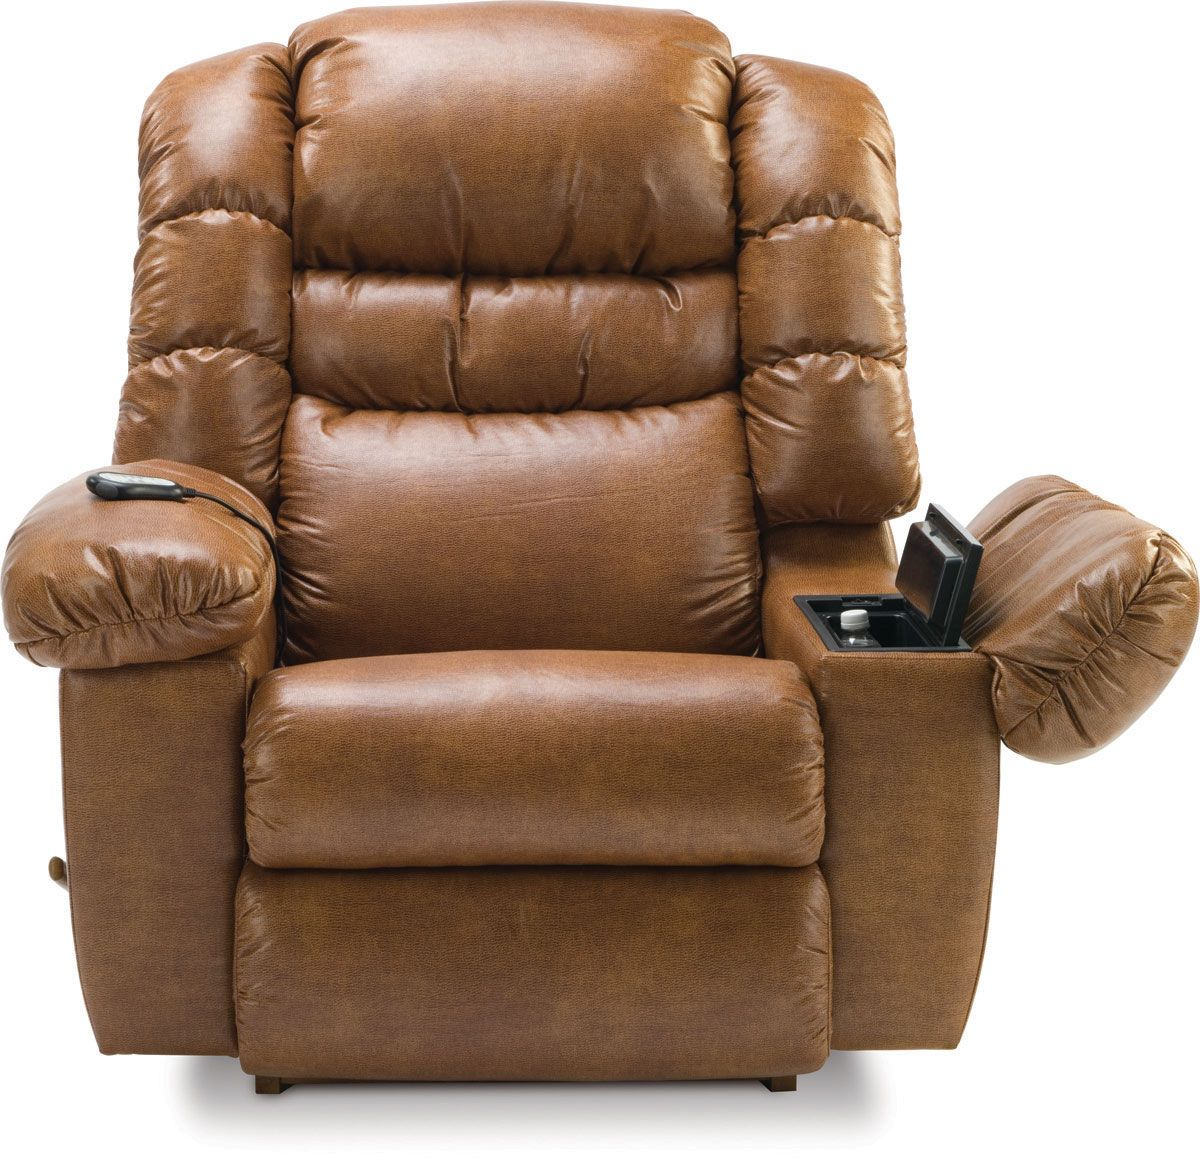 Best Interior Lazy Boy Chair Brown Couch Living Room Brown 400 x 300